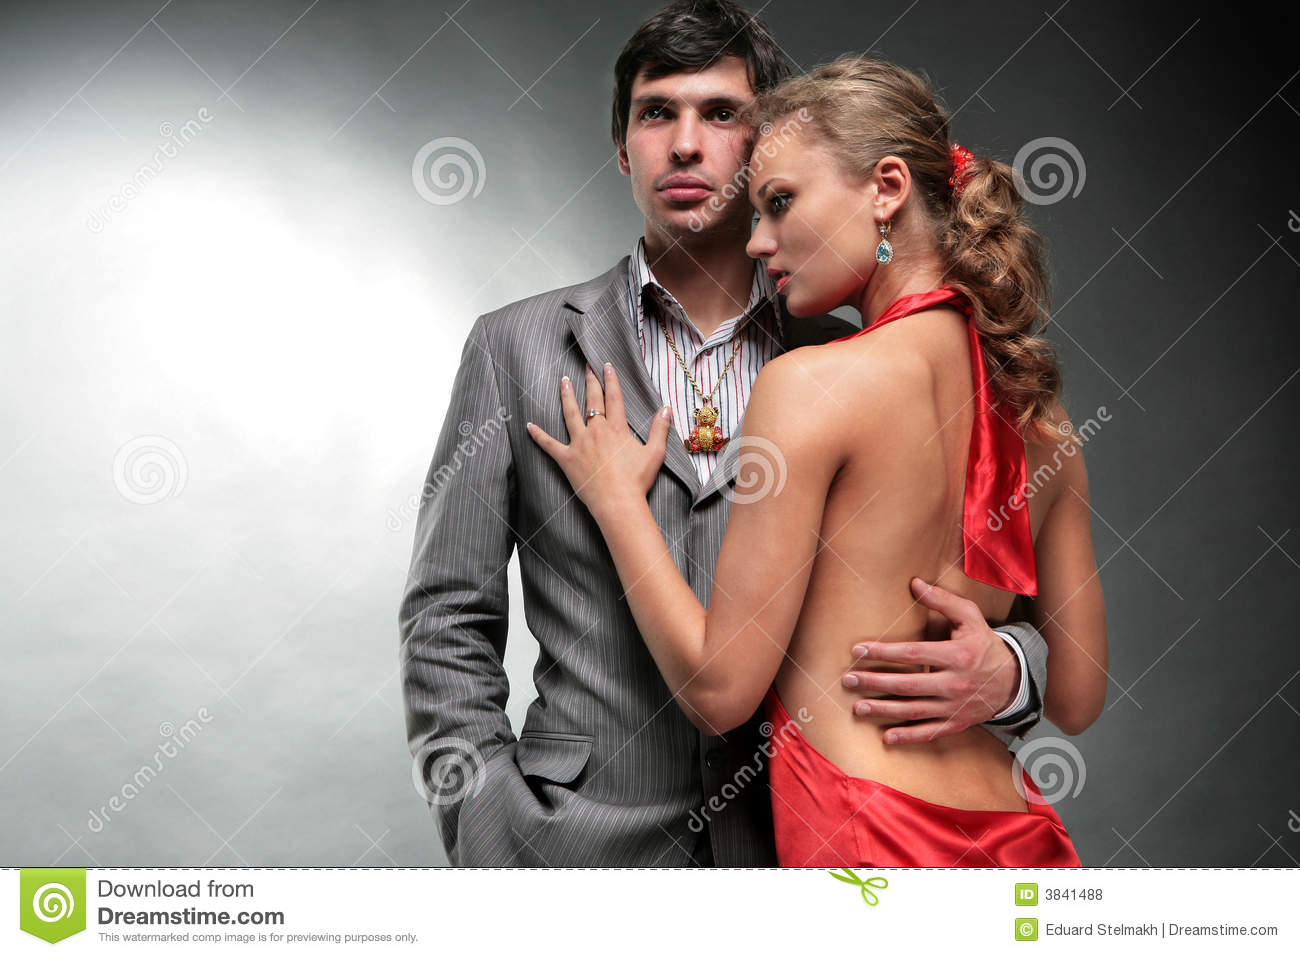 Young woman embraces man. Woman in a red dress.